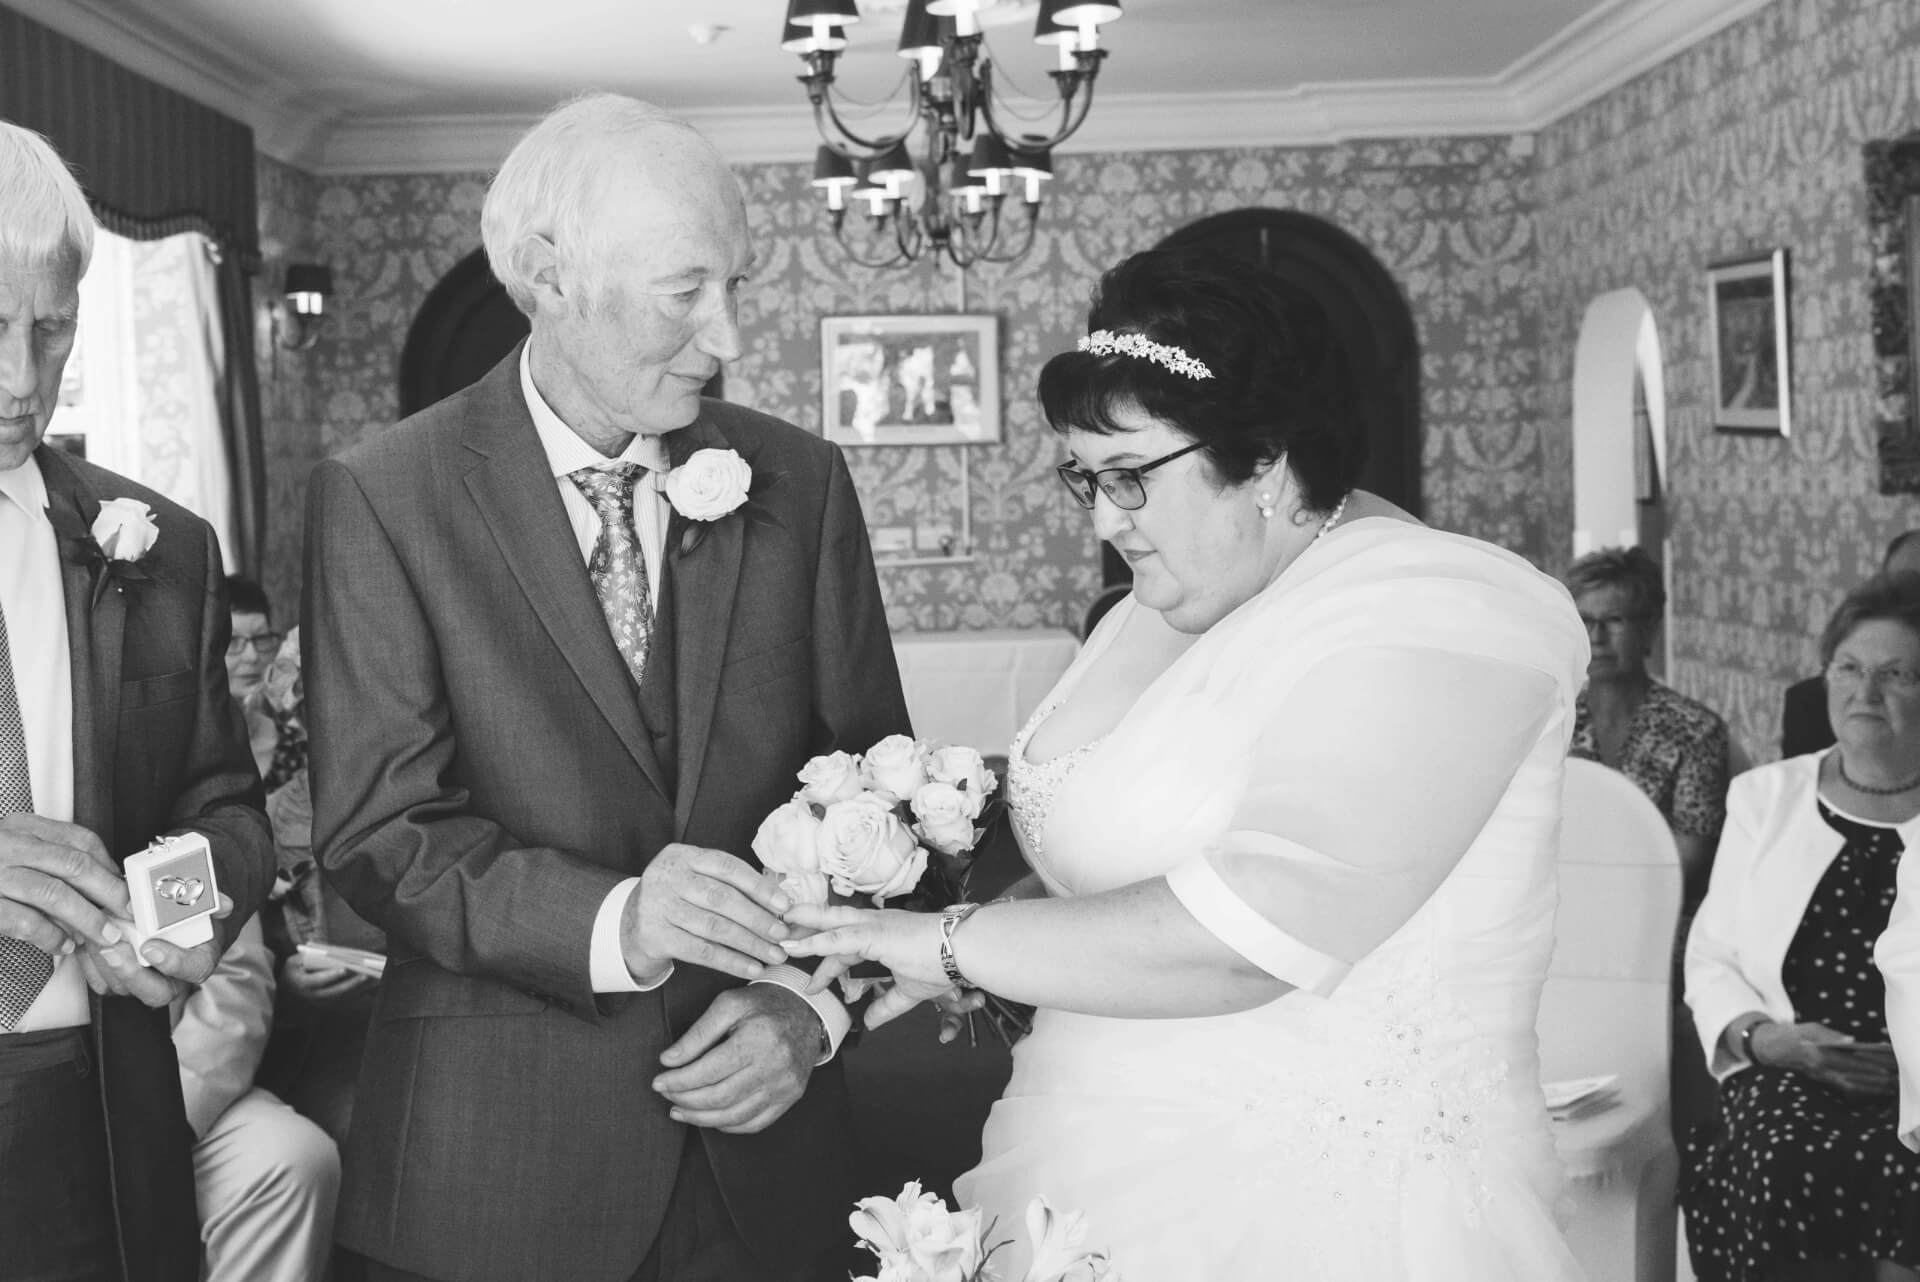 Exchanging of the rings during the wedding ceremony at Woodlands hotel, Spalding   Wedding photography at Woodlands Hotel Spalding by Slice of Life Photography